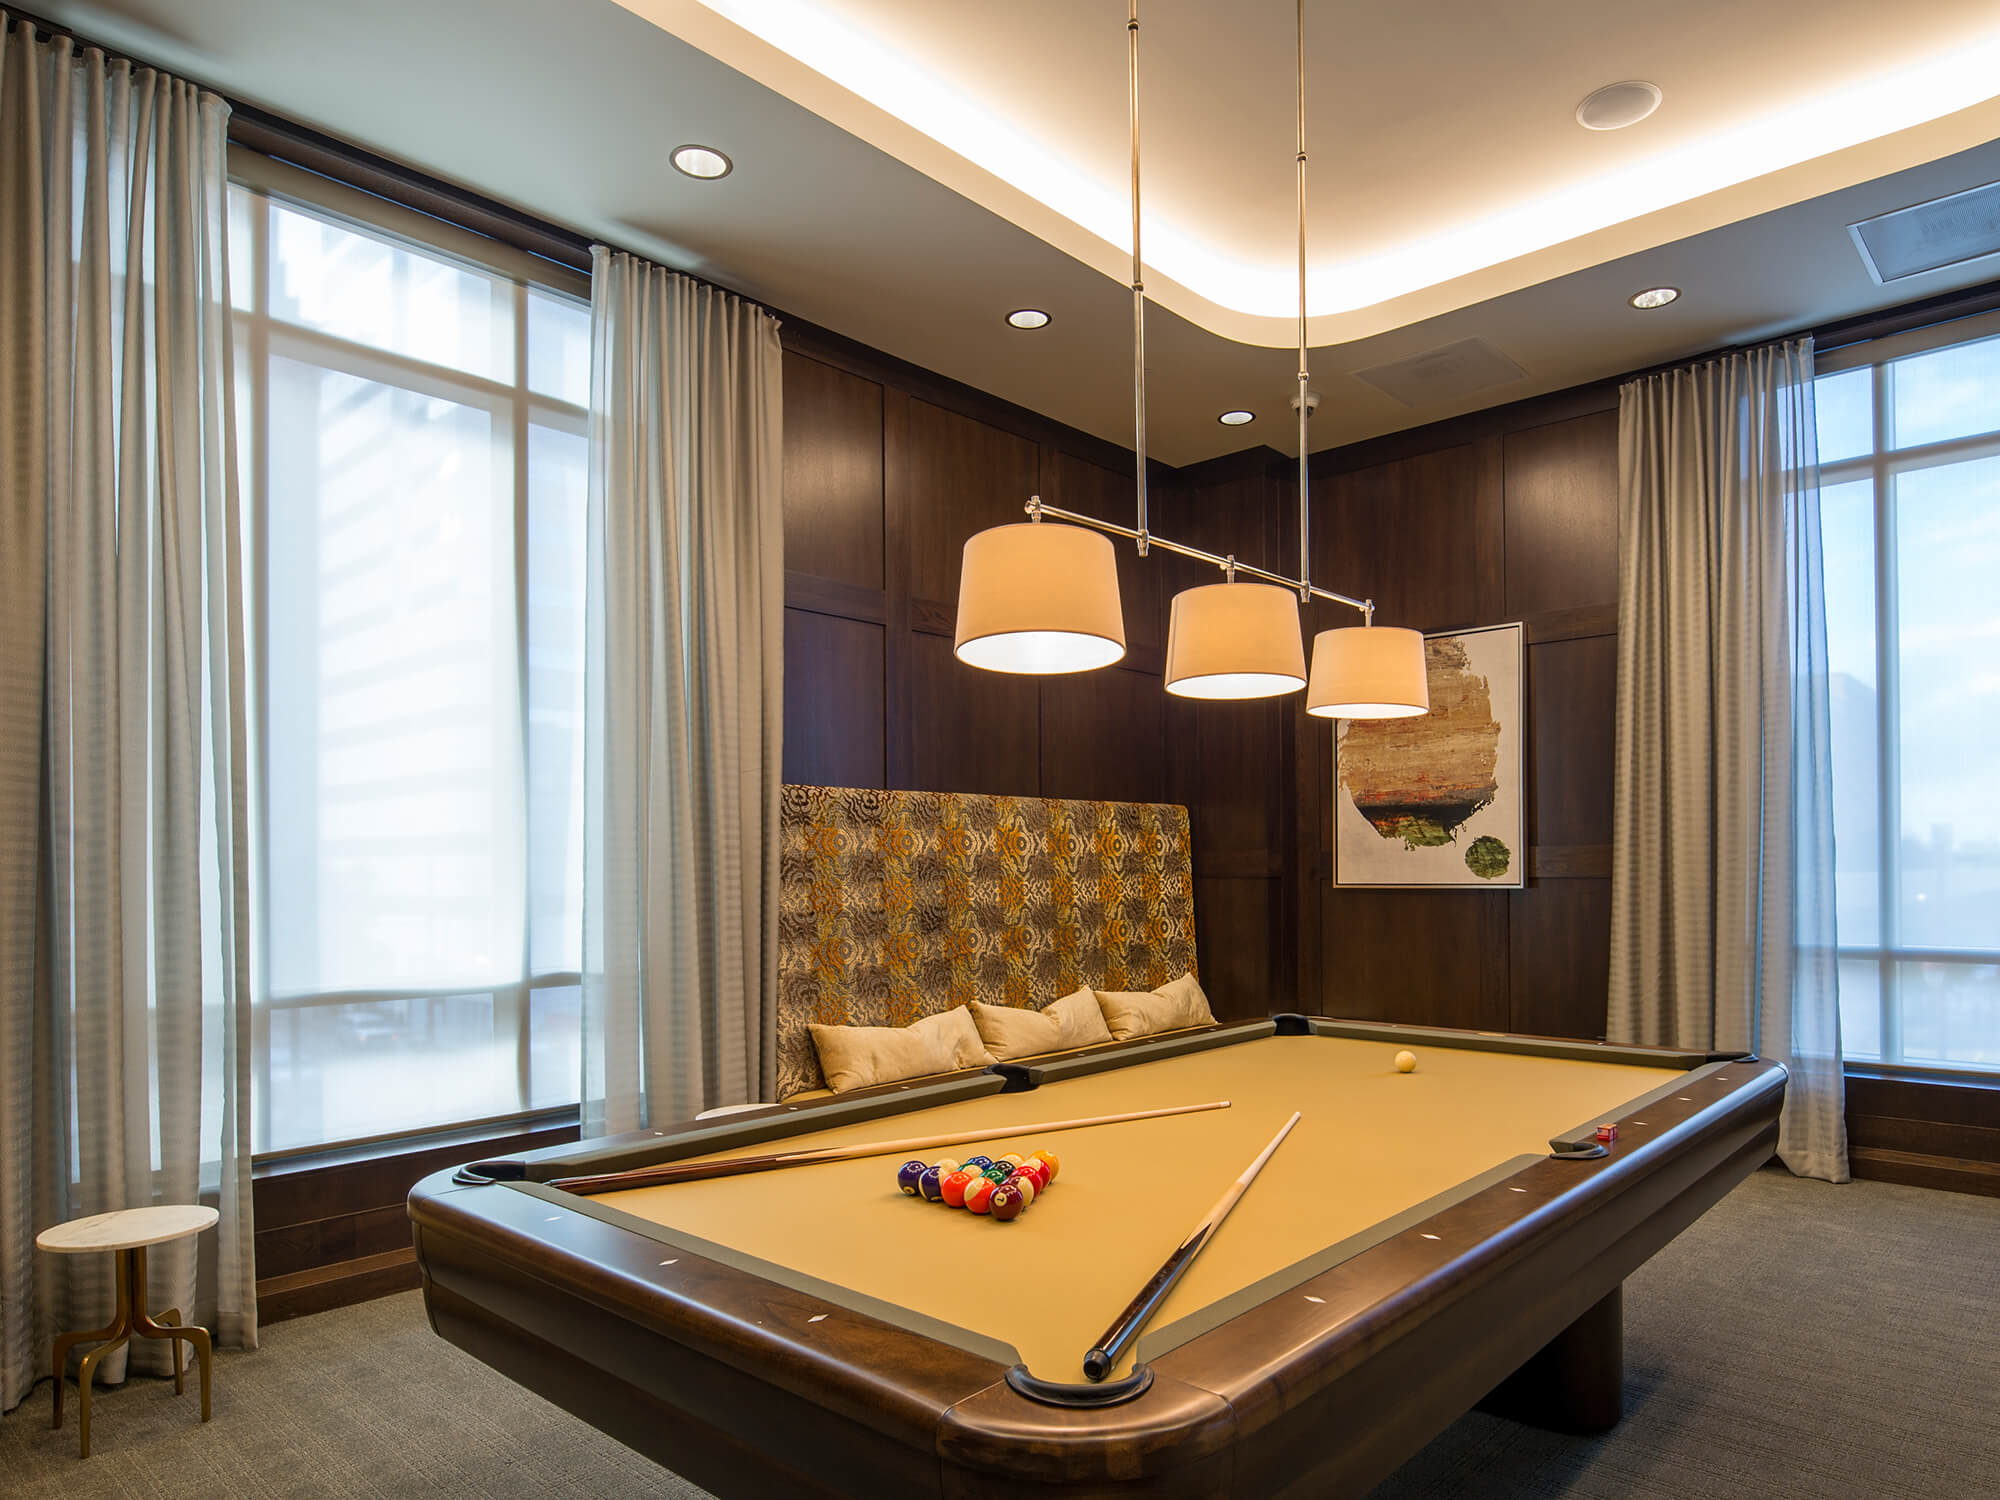 Market Square Tower Billiards Room